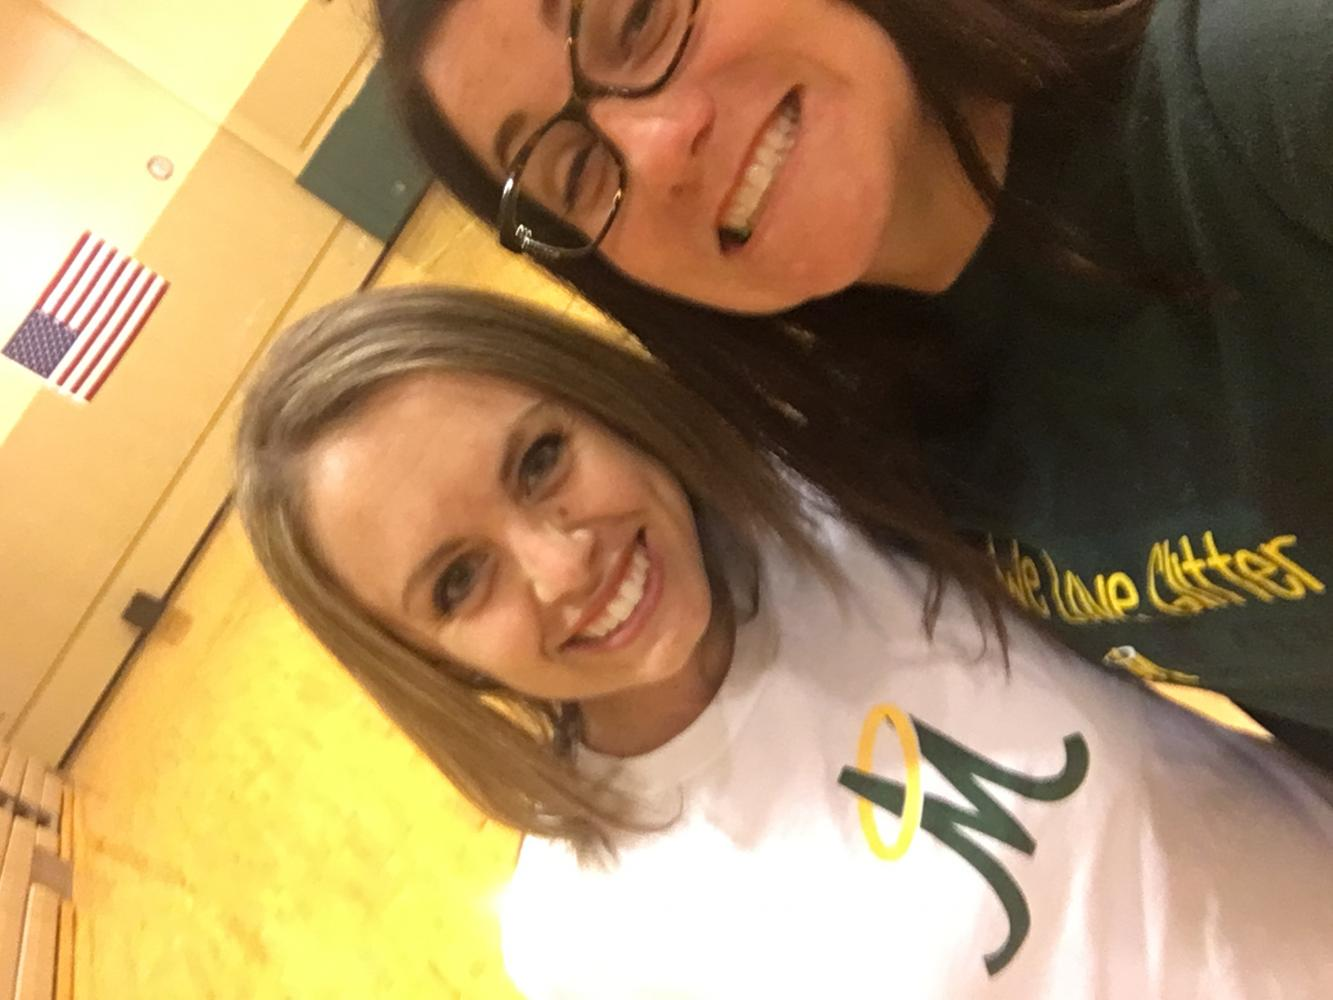 The Jessica take a quick selfie before an afternoon practice! Pictured on the left is Jessica Bradshaw and to the right is Jessica Zeigler. (Photo courtesy of Jessica Zeigler)